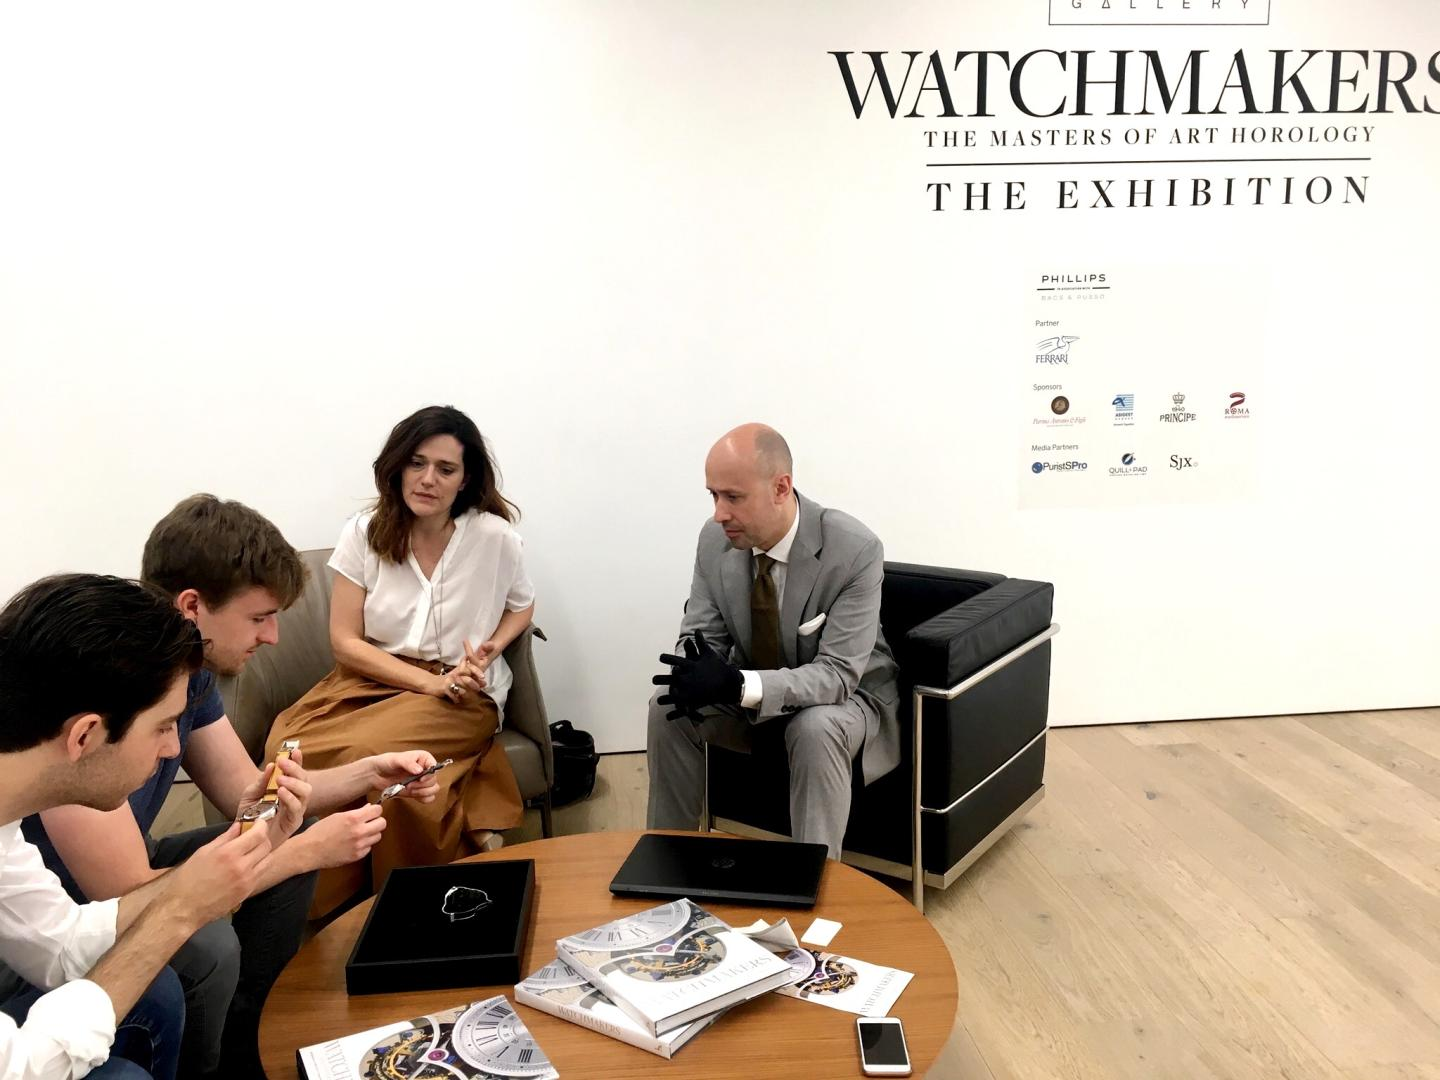 Phillips hosted the Independent Watchmakers Exhibition world tour terminating in London. My millennial watch-enthusiast guests had the privilege of a private viewing of the masterpieces with the exhibition owner, Mr Claudio Proietti of Maxima Gallery.